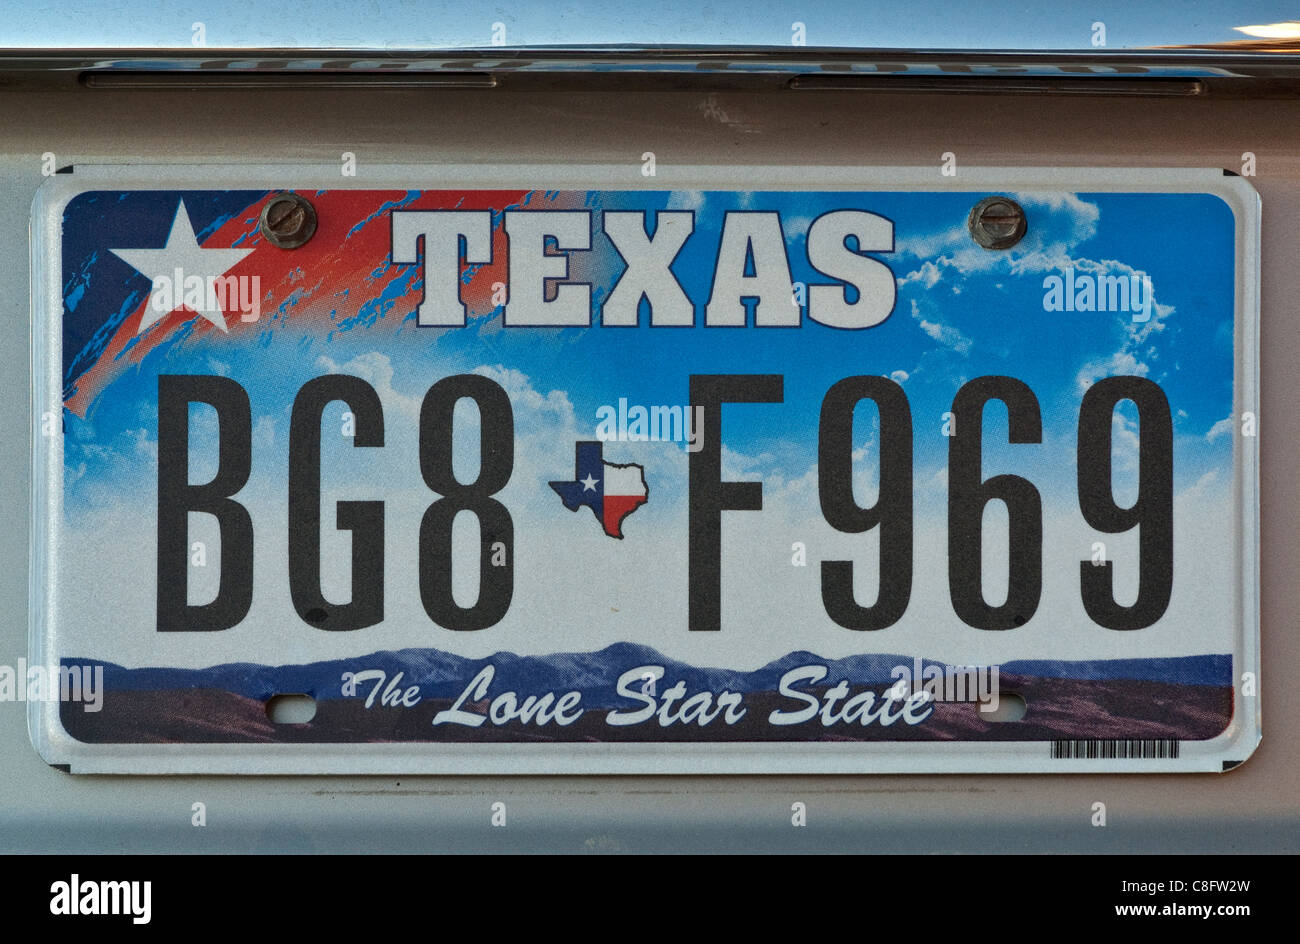 Car license plate in Texas,The Lone Star State, USA - Stock Image